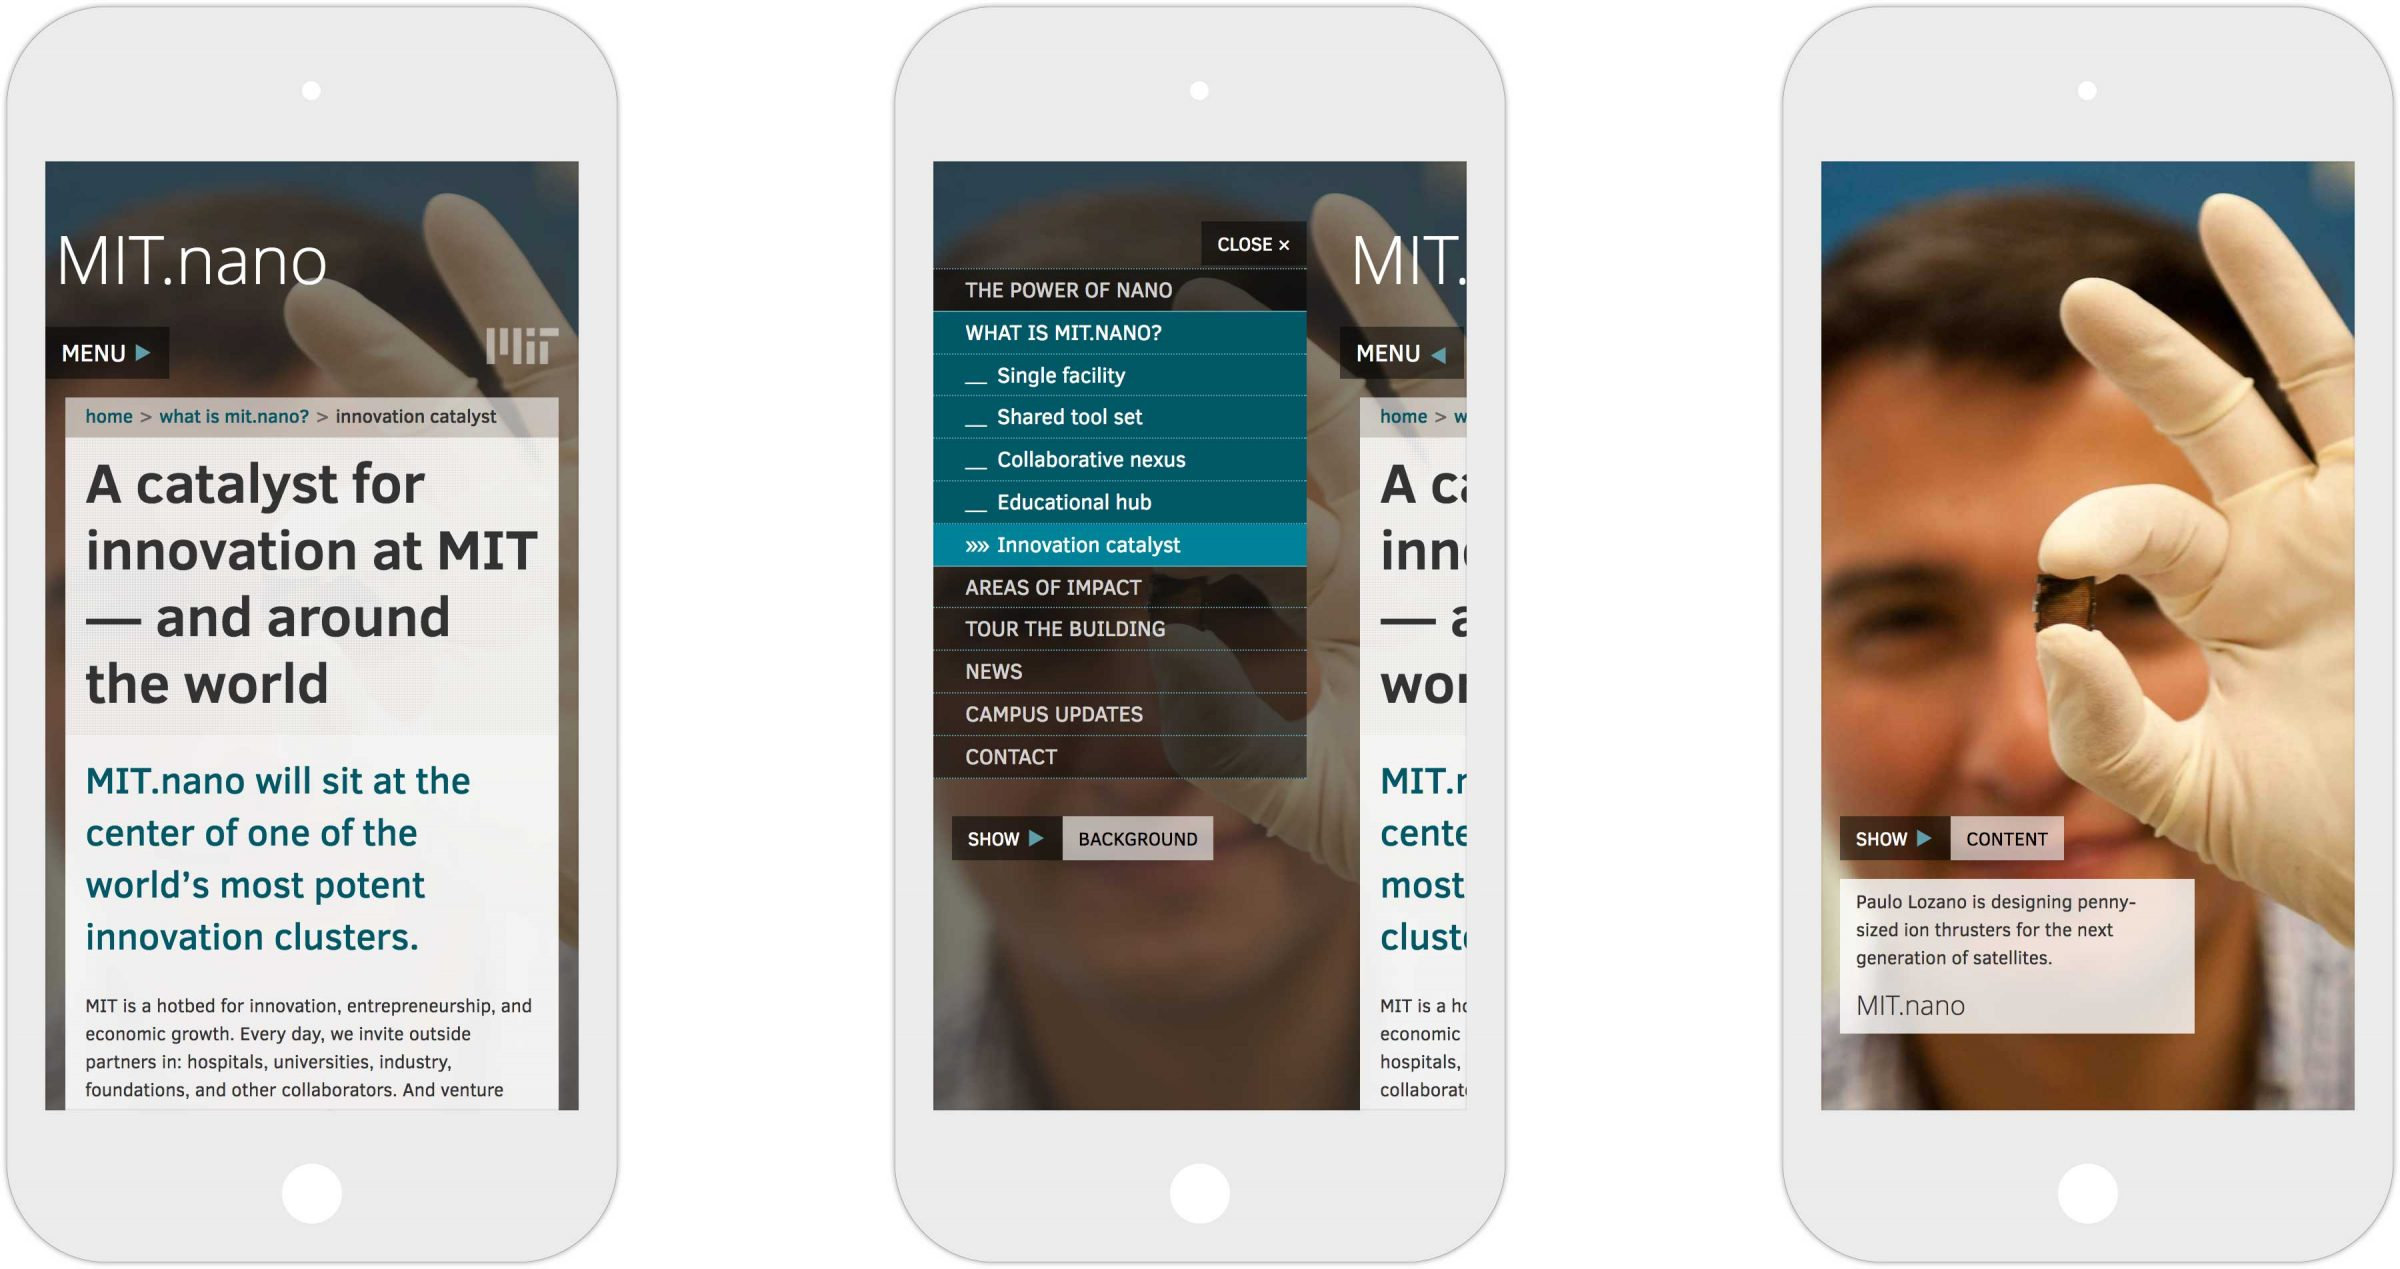 Three views of responsive MIT.nano website on iPhone